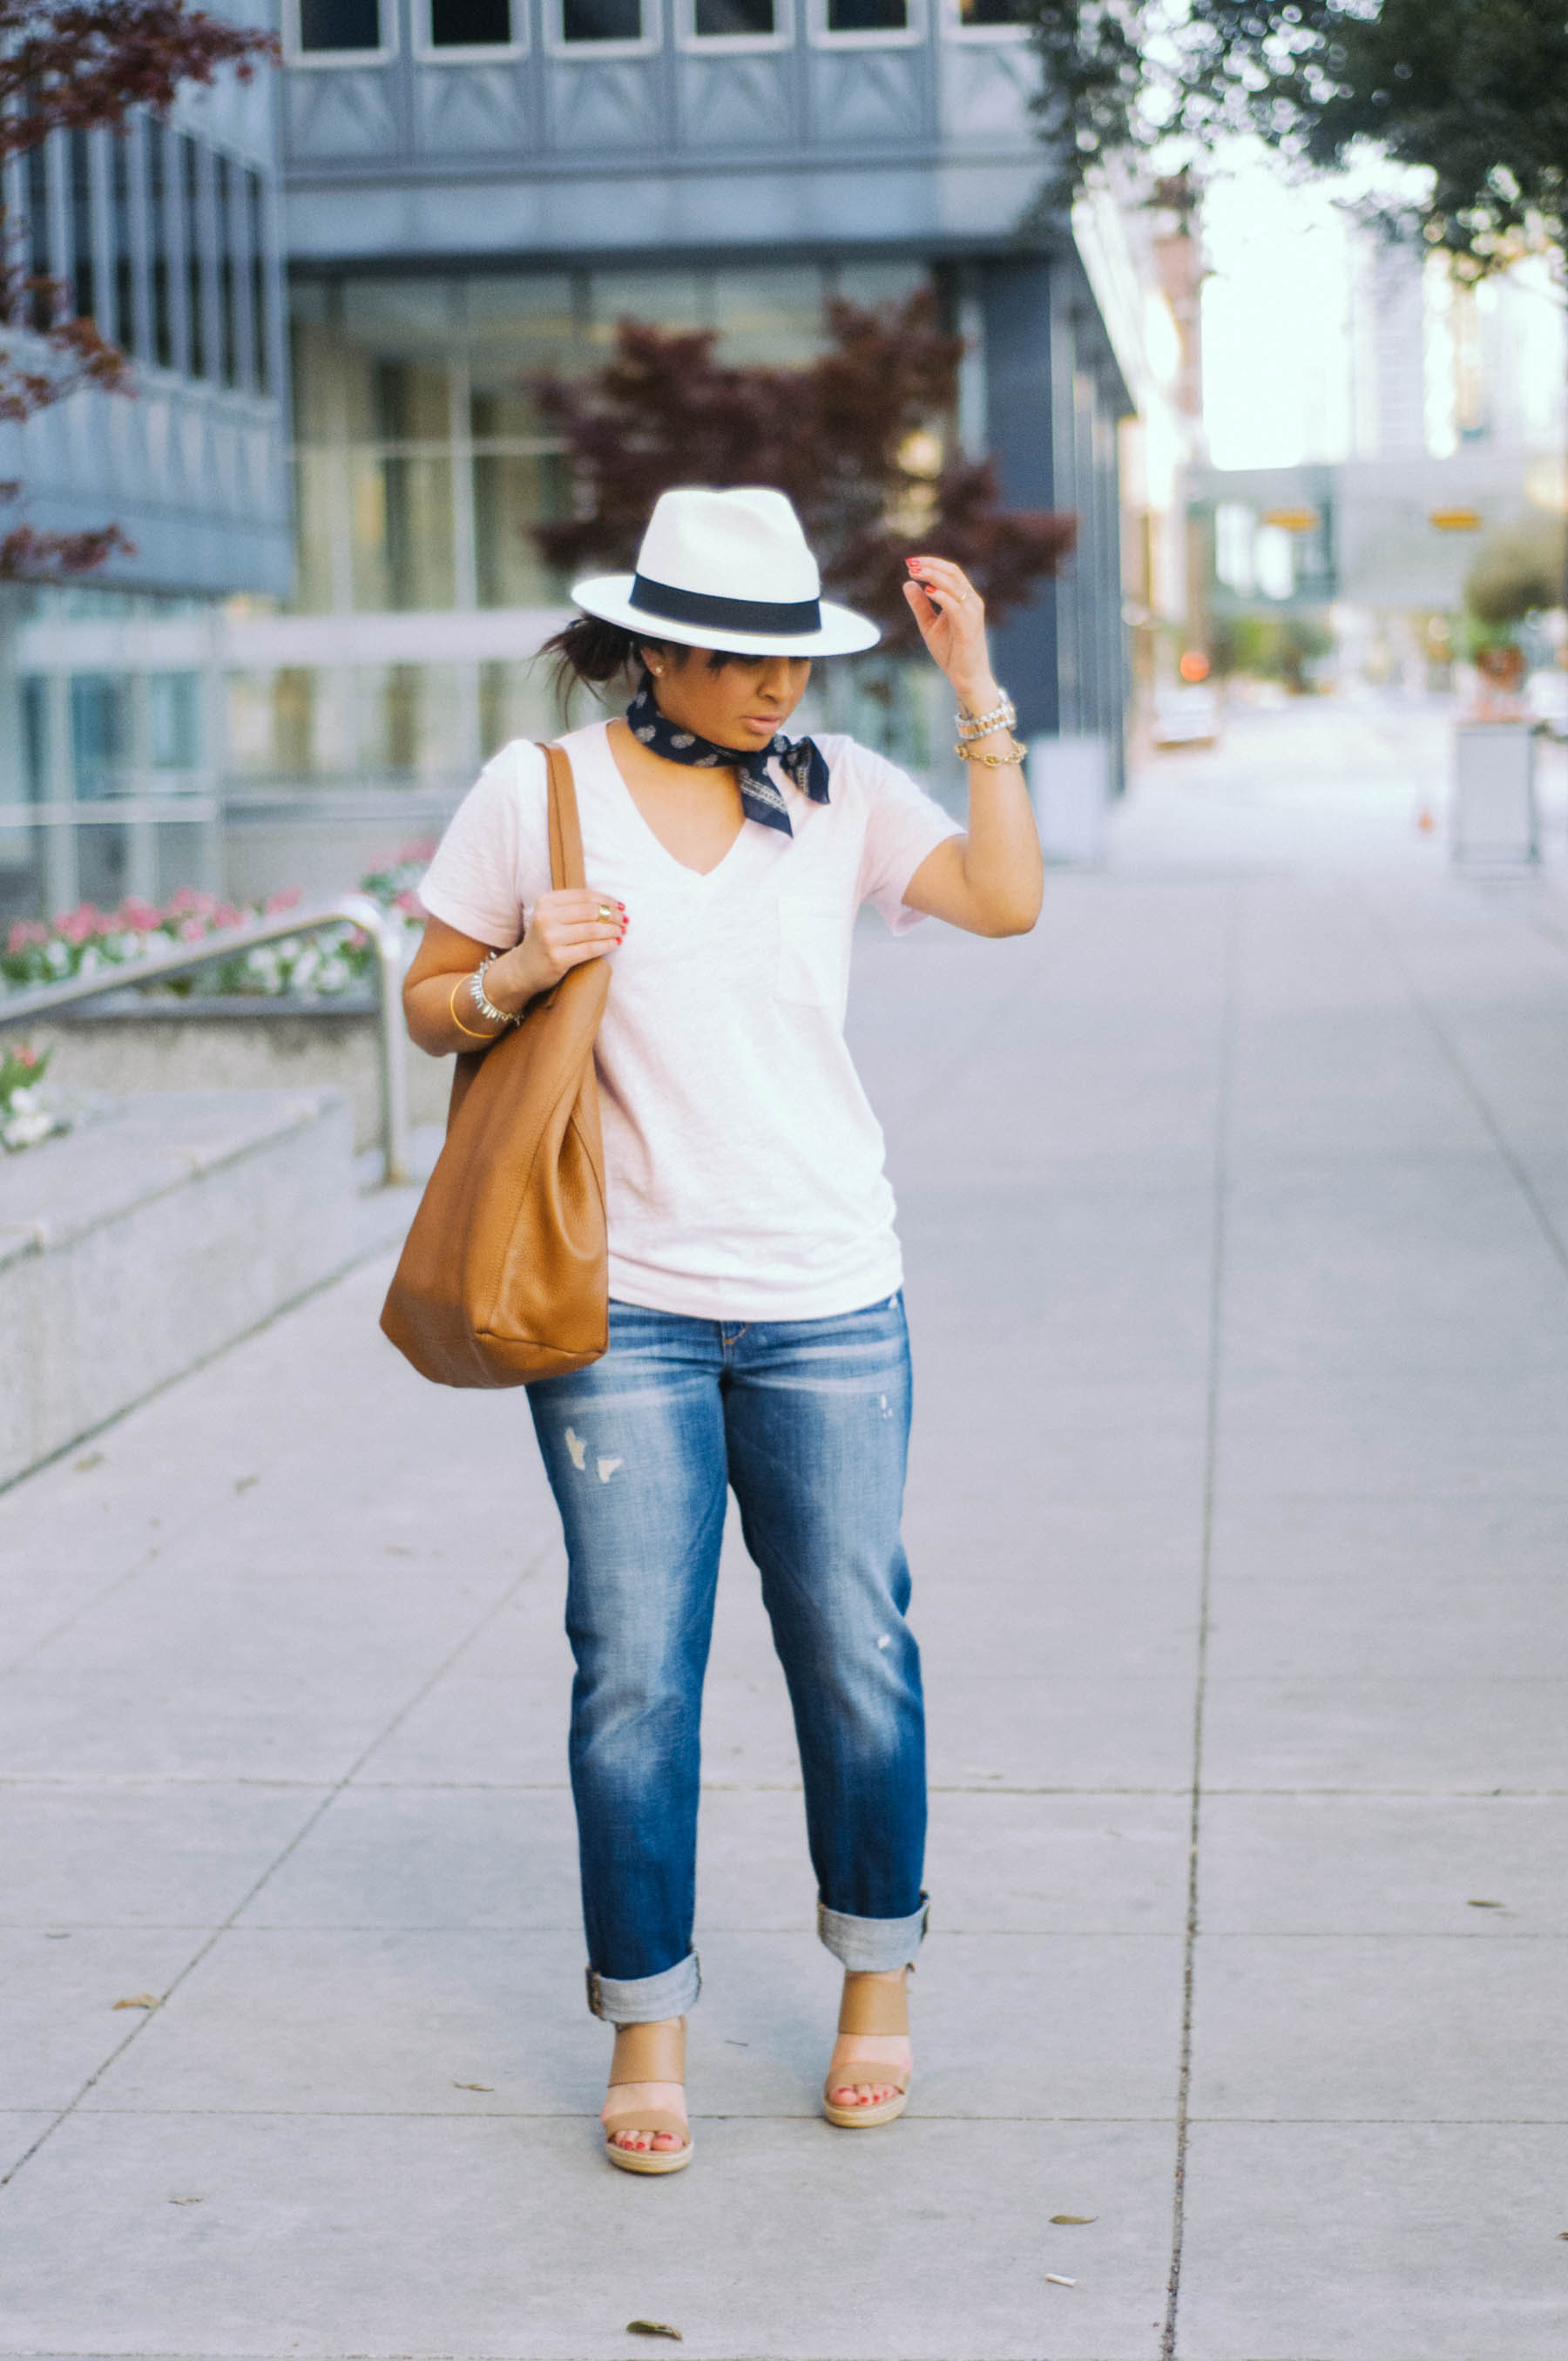 Hat:  J.Crew  | T-Shirt:  Madewell  | Jeans: Joe's (check  these  out) | Shoes:  Charles David  | Handkerchief:  Madewell  | Watch:  Fossil  | Jewelry: J.Crew Factory (gotta love this  guy ), Stella & Dot | Bag: Cuyana (obsessed with  this one )